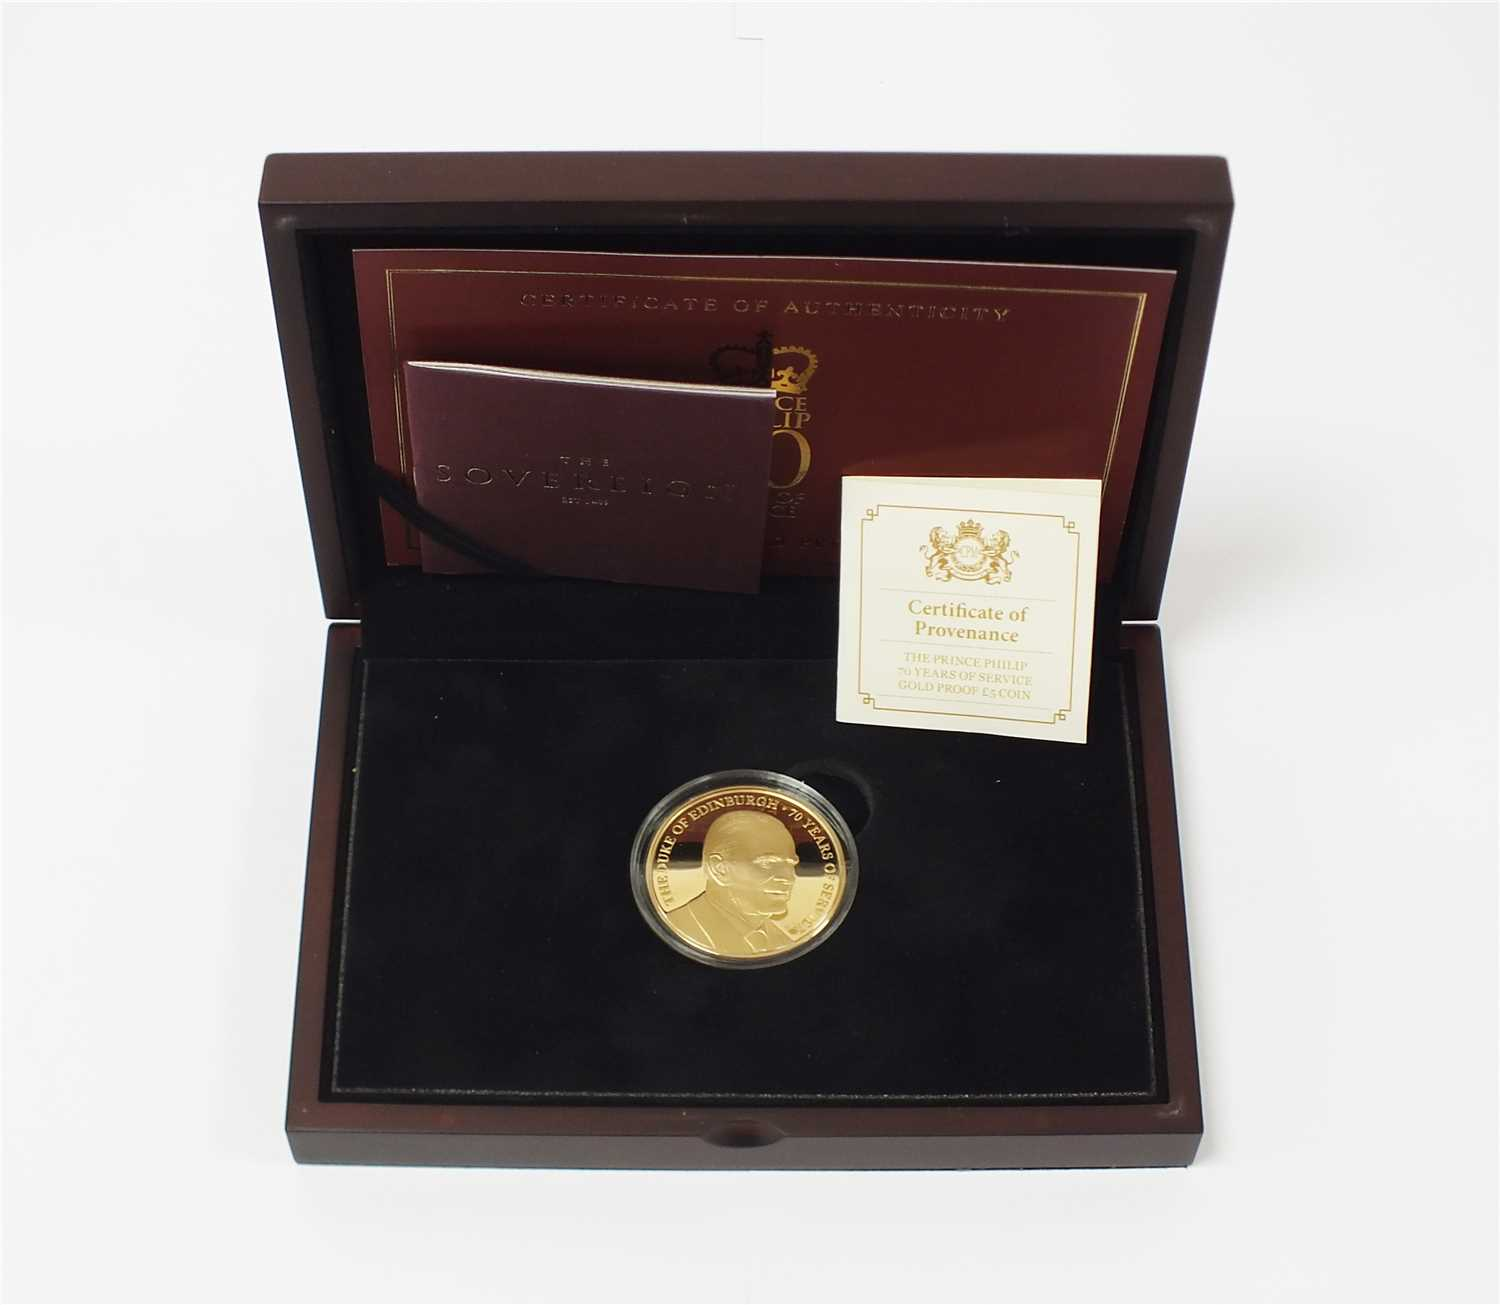 459 - Jersey, The Prince Philip 70 years of service gold proof £5 coin